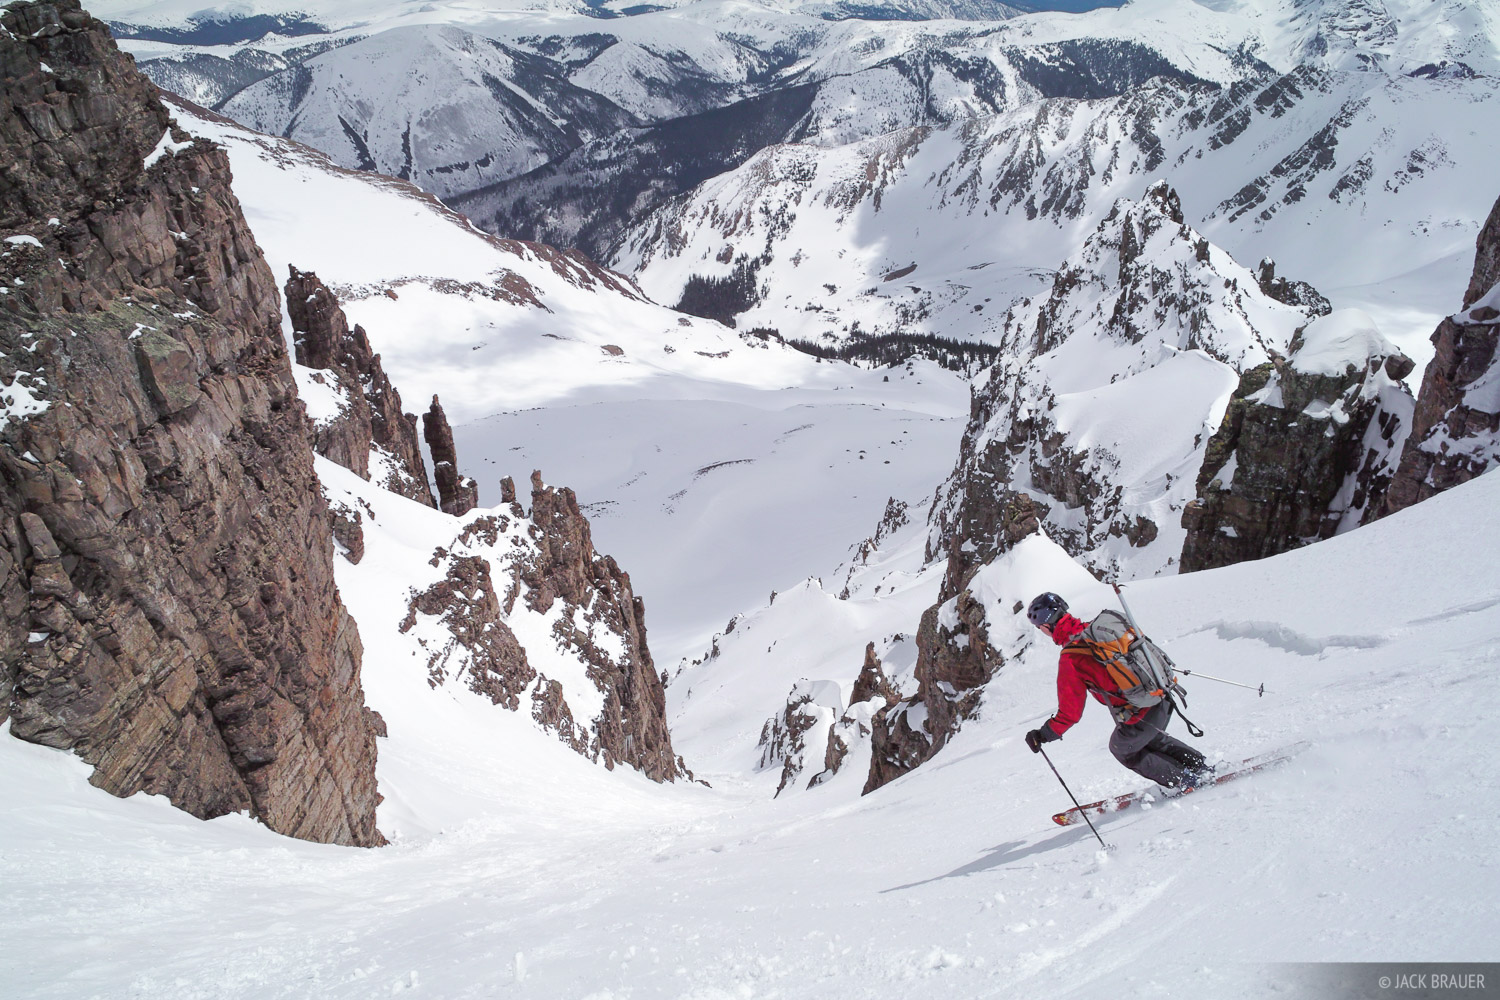 Skiing, Pearl Couloir, Cathedral Peak, Elk Mountains, Colorado, Maroon Bells-Snowmass Wilderness, photo